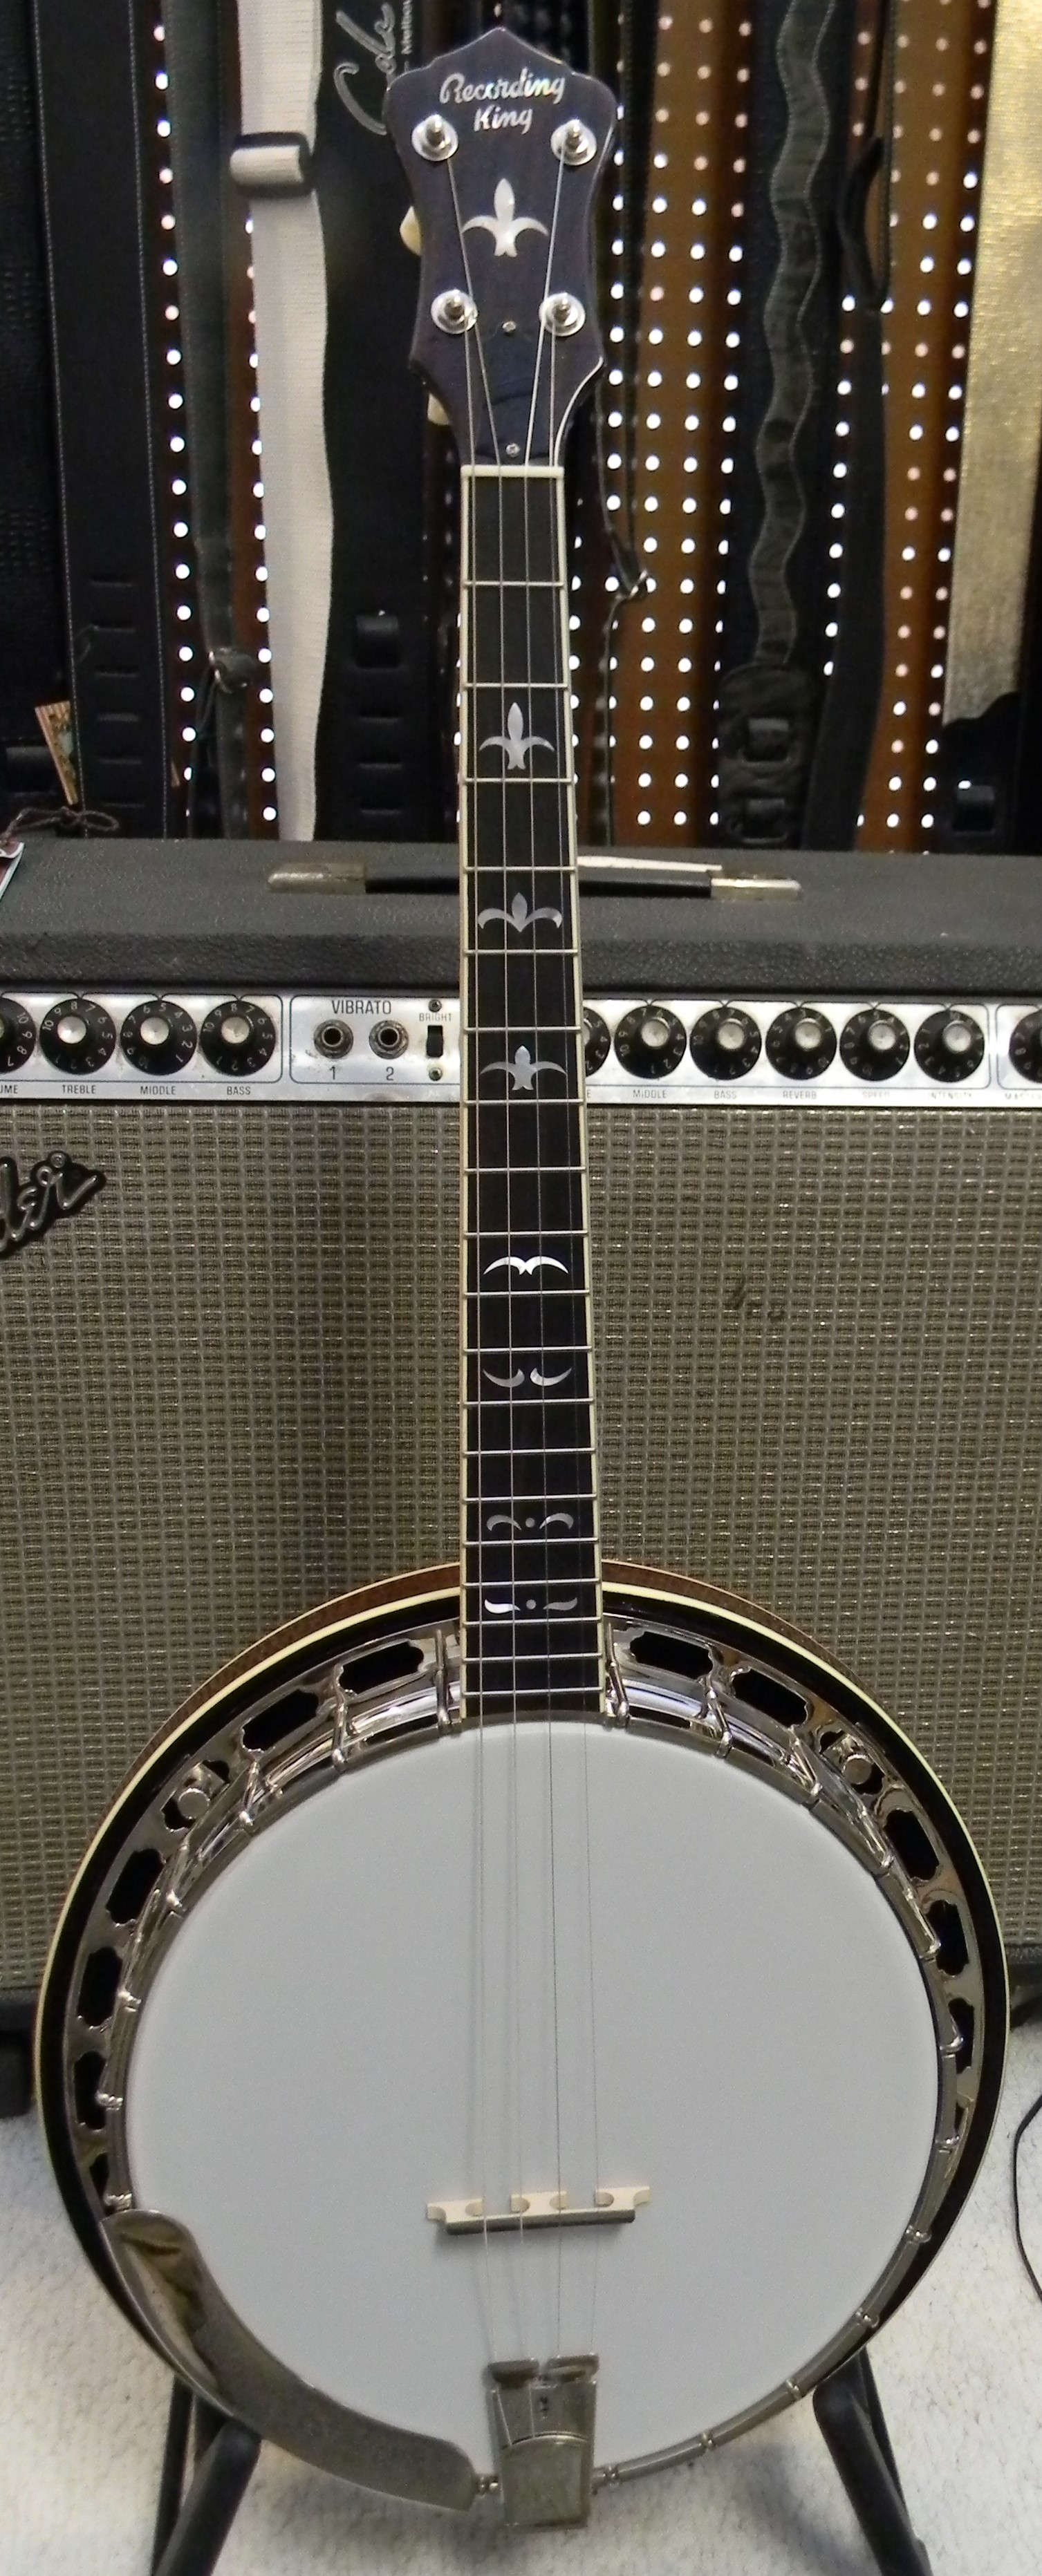 Recording King RK R36 tenor banjo. This is a professional quality tenor for those who can't quite tke the plunge into an expensive USA made banjo. All the right componenets with maple rim, mahogany neck and resonator, brass Mastertone style tone ring, and nickel plated hardware. $995.00